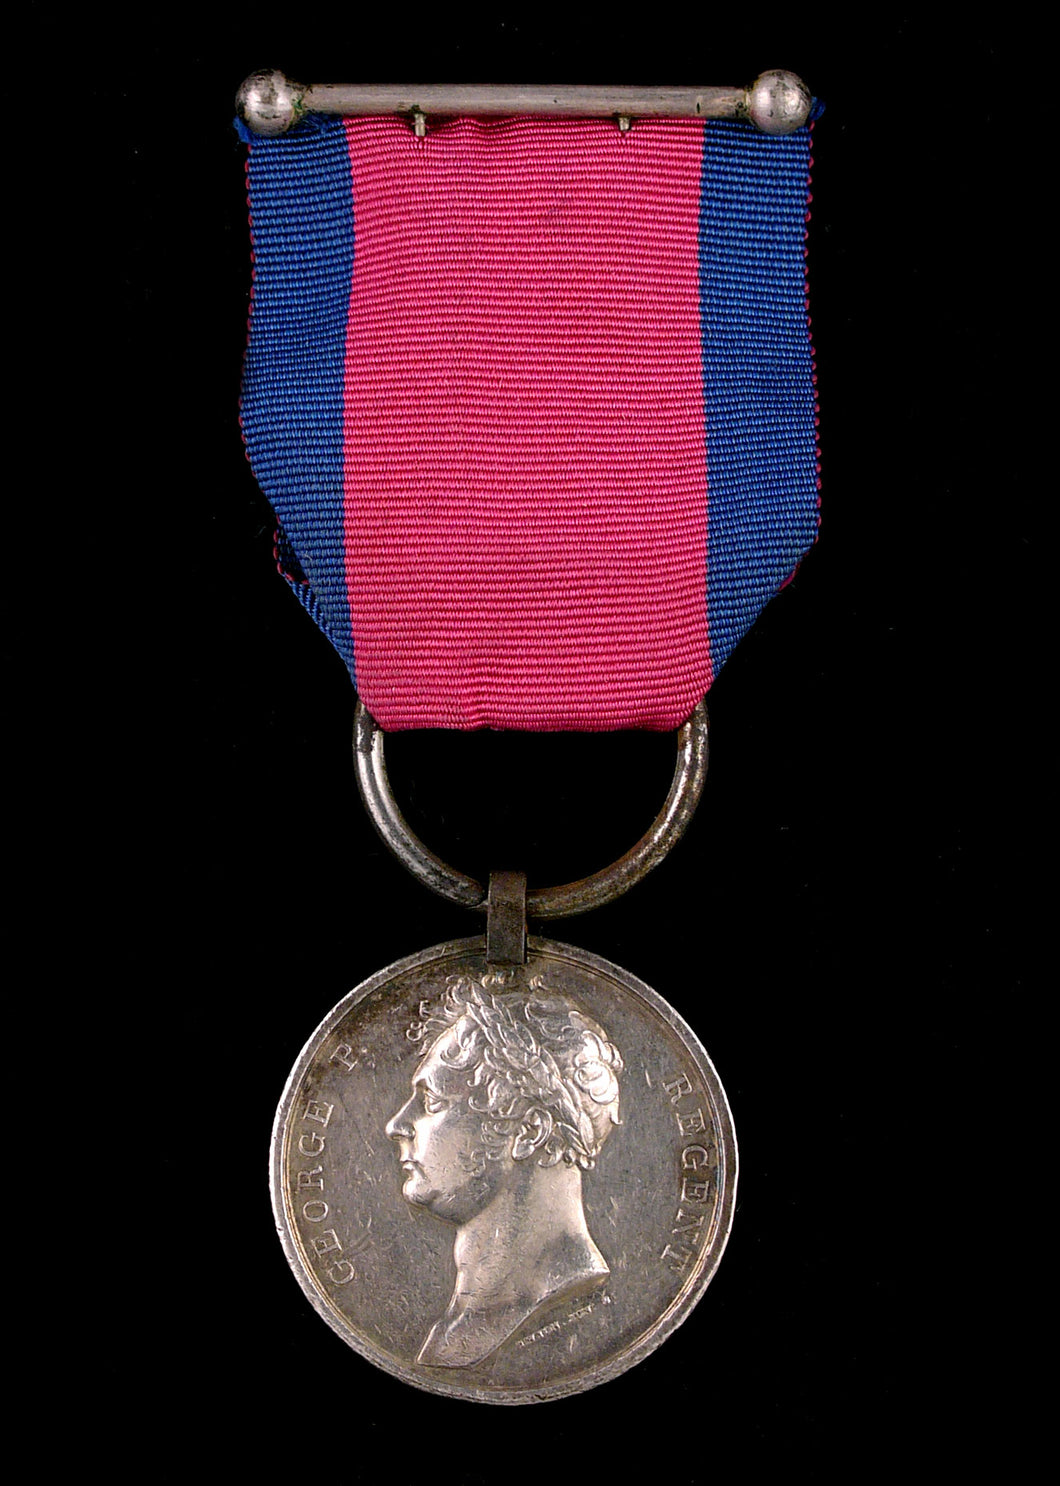 Waterloo Medal, 1815 (Ensign Charles Smith, 33rd Regiment of Foot) fitted with steel clip and ring suspension